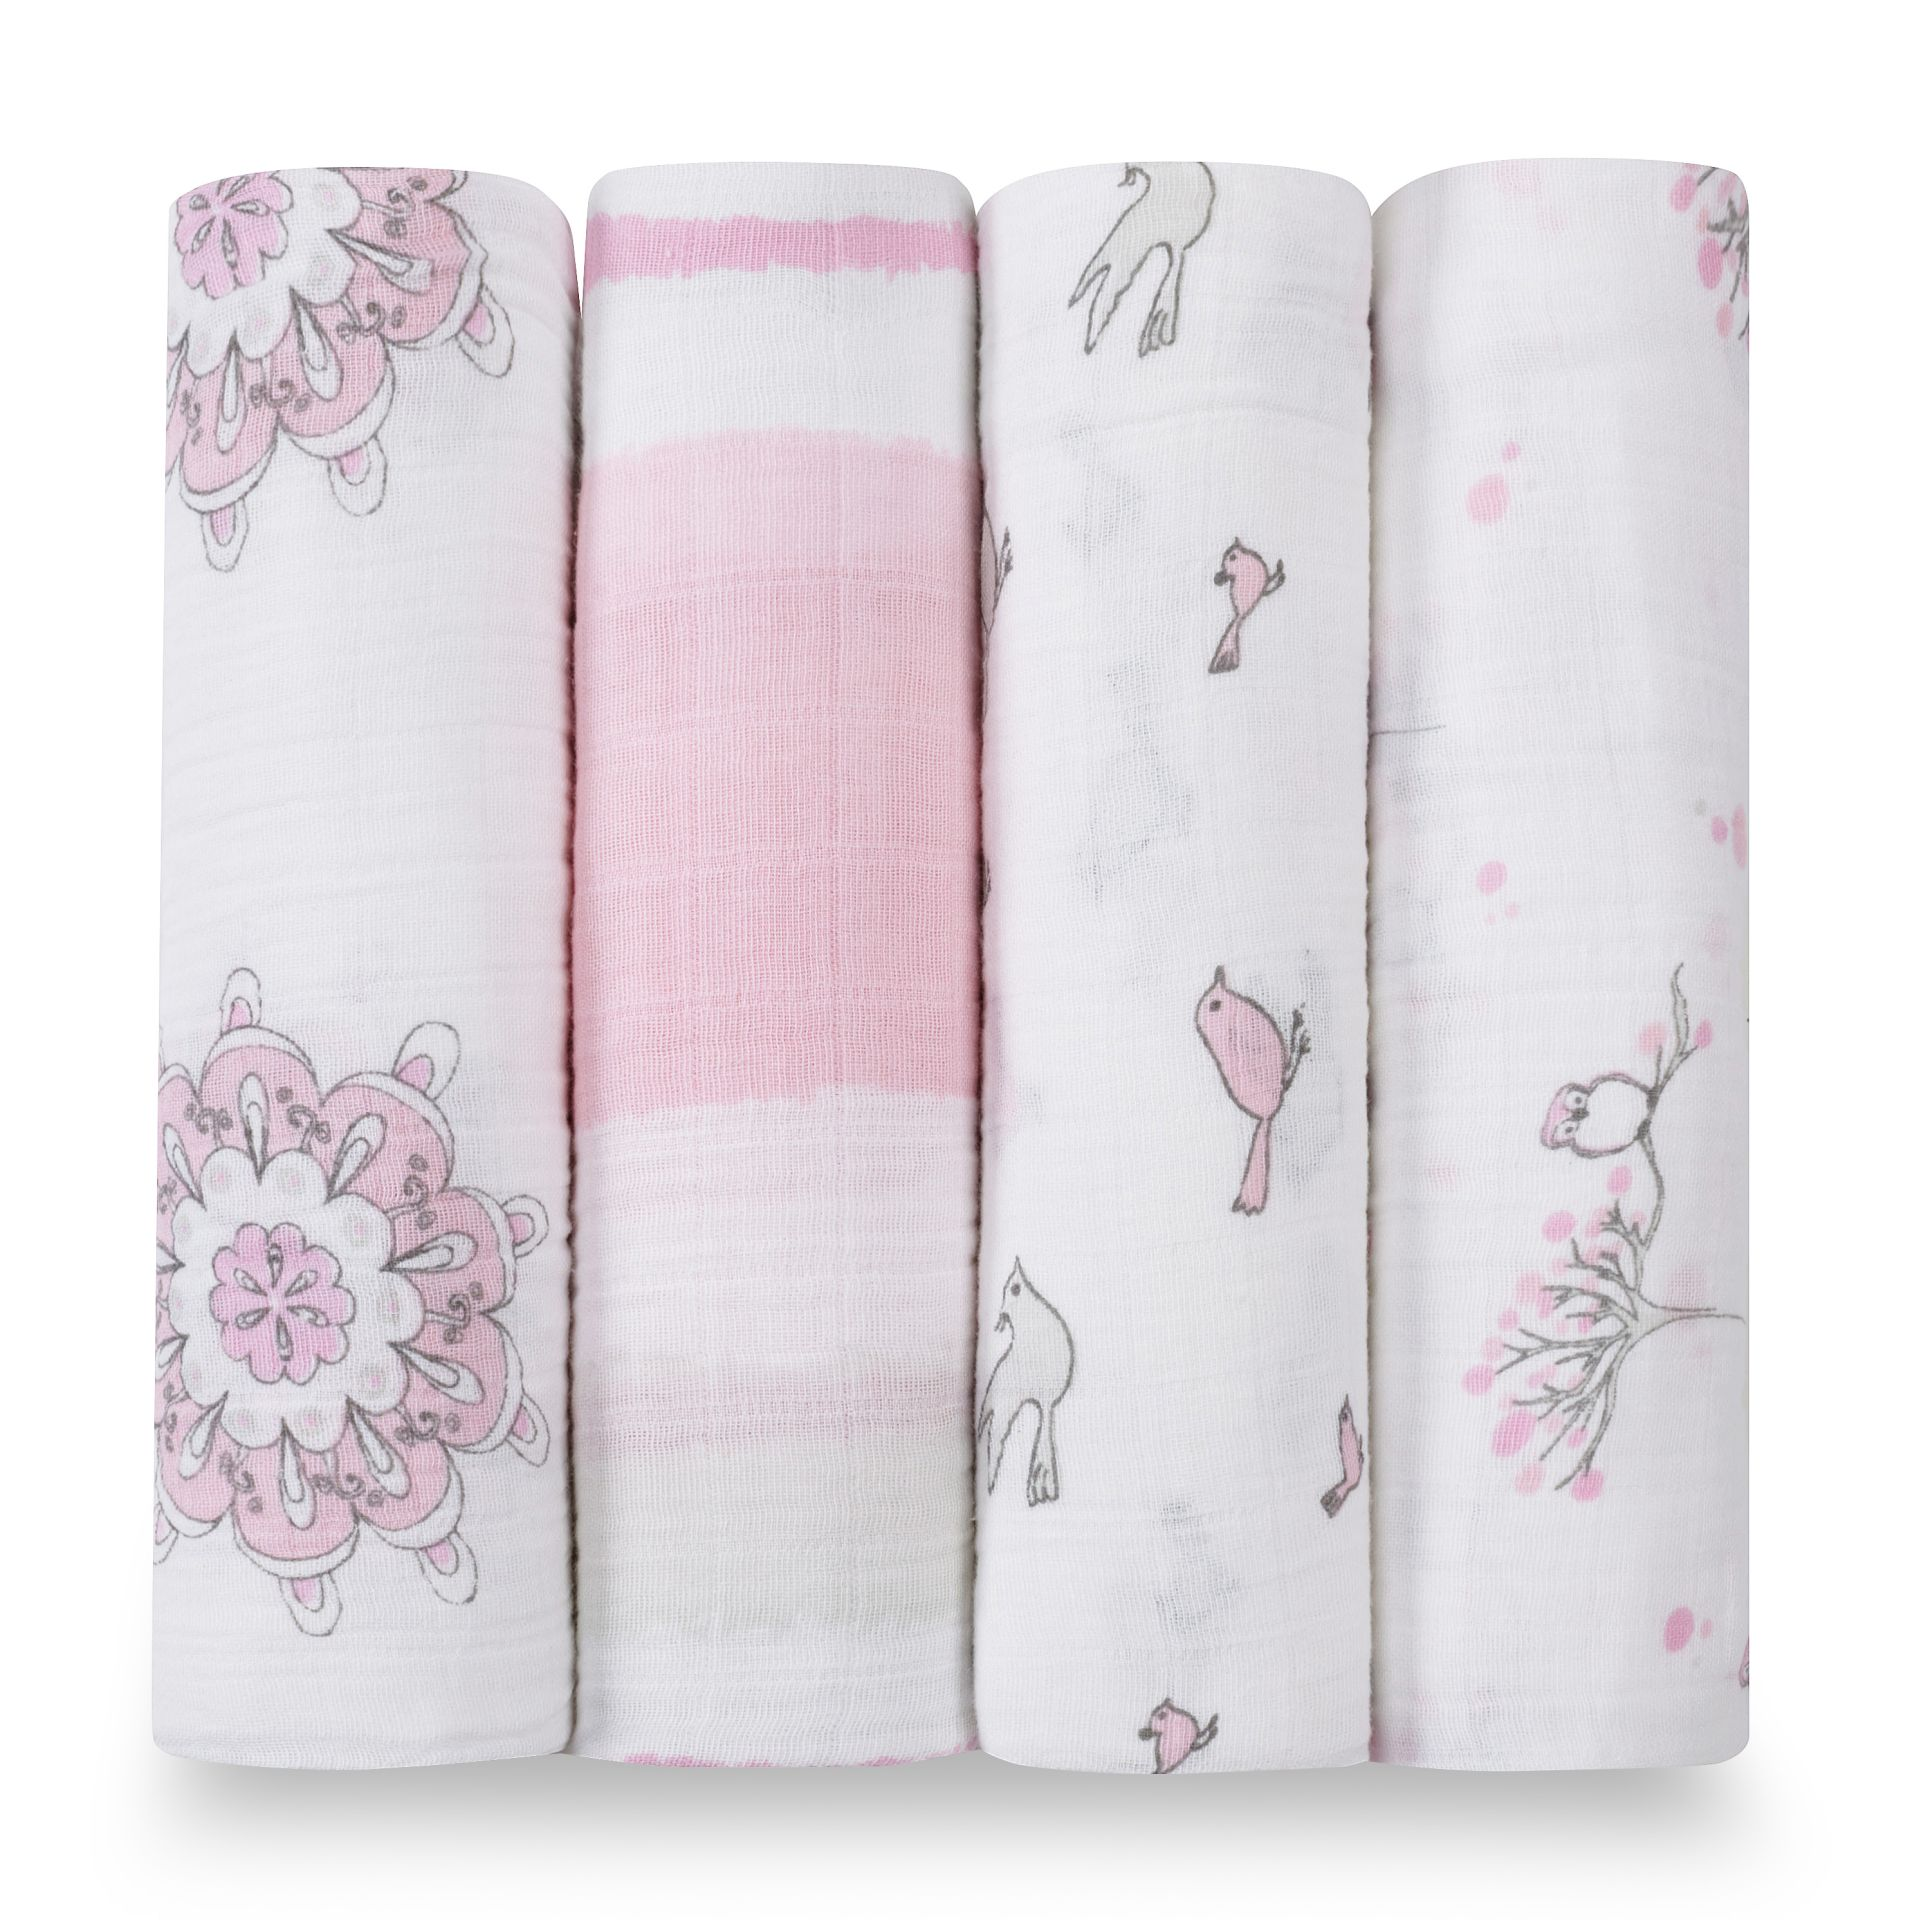 Ideal Anais Swaddle Sale Aden Aden Four Pieces 2017 Four Pieces Anais Swaddle Instructions Classic Swaddle Cloths Pack Large Classic Swaddle Cloths Pack baby Aden And Anais Swaddle